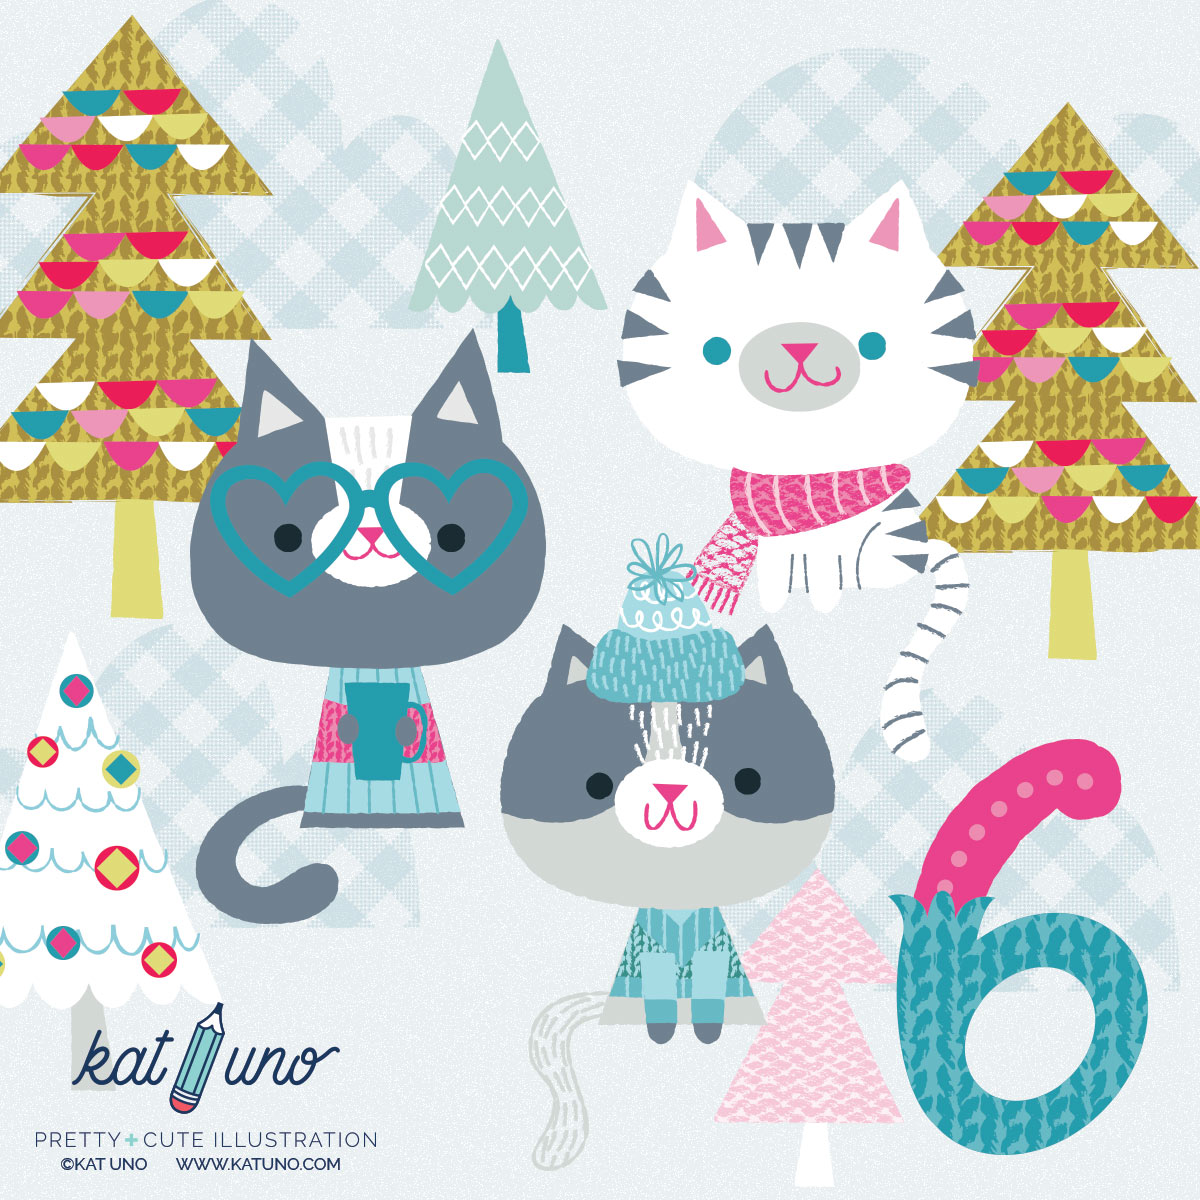 Day 6 of the Holiday Advent Project - Kat Uno Designs